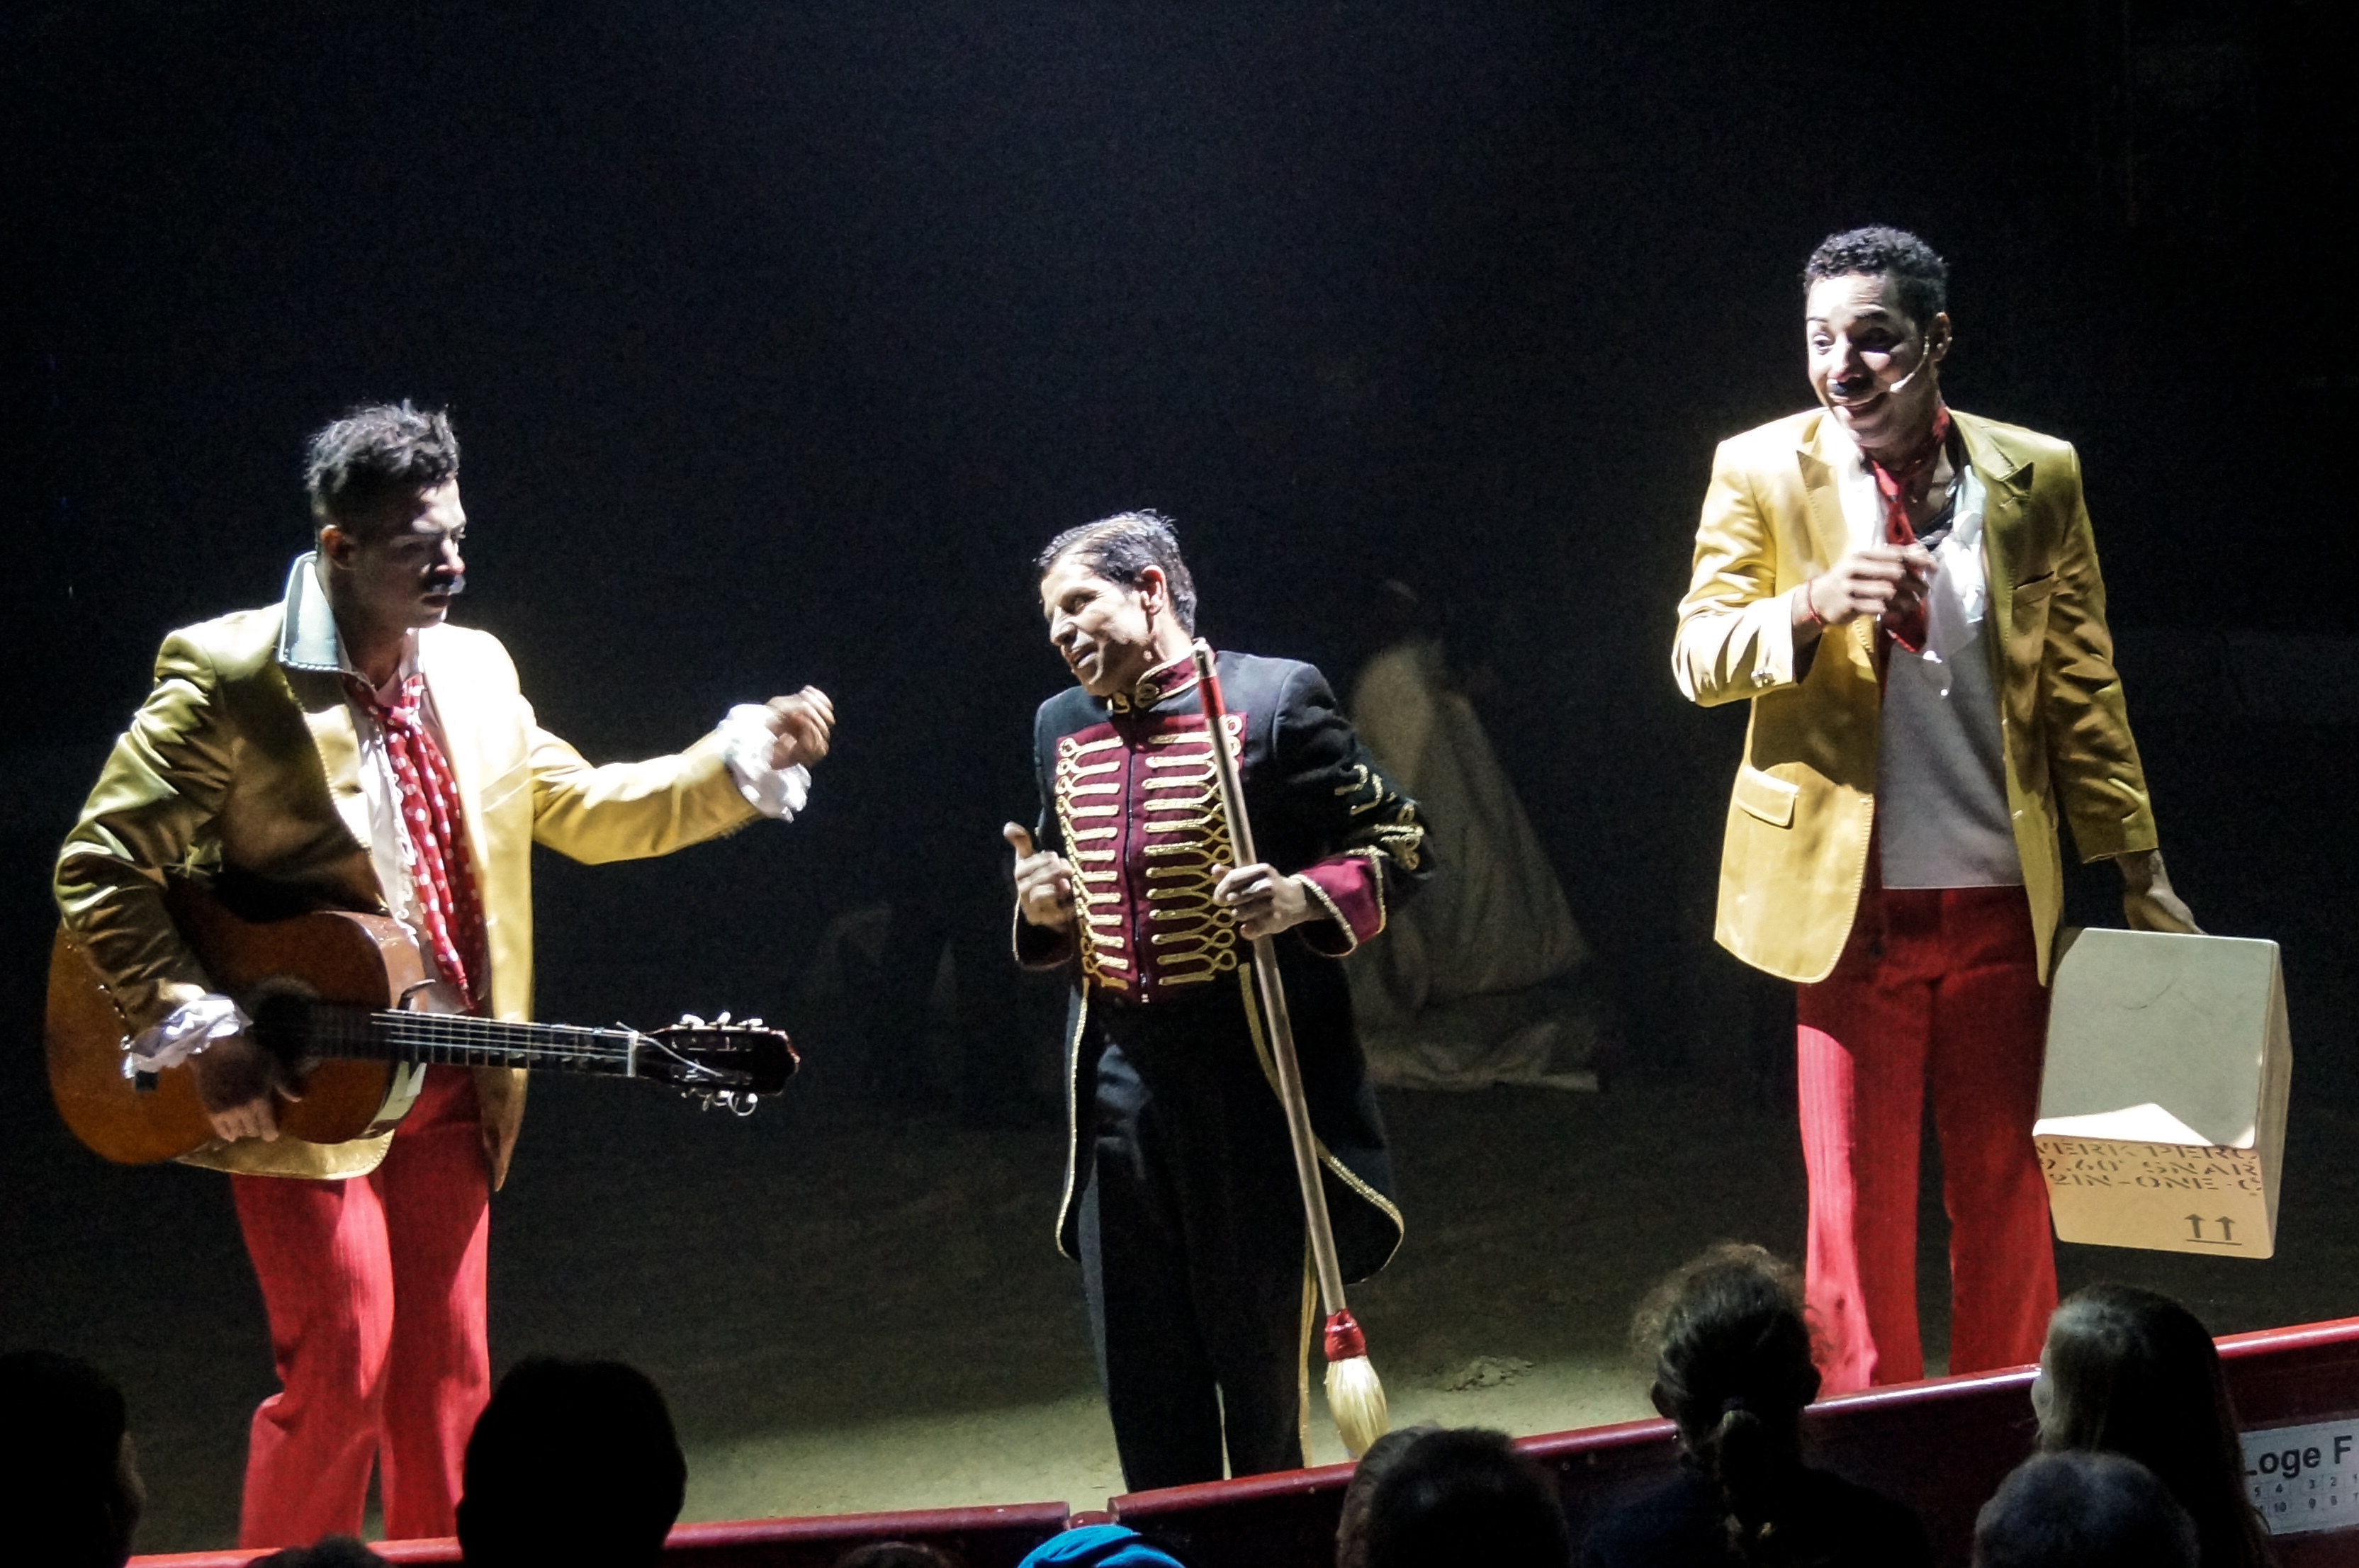 circus clown mustachebrothers